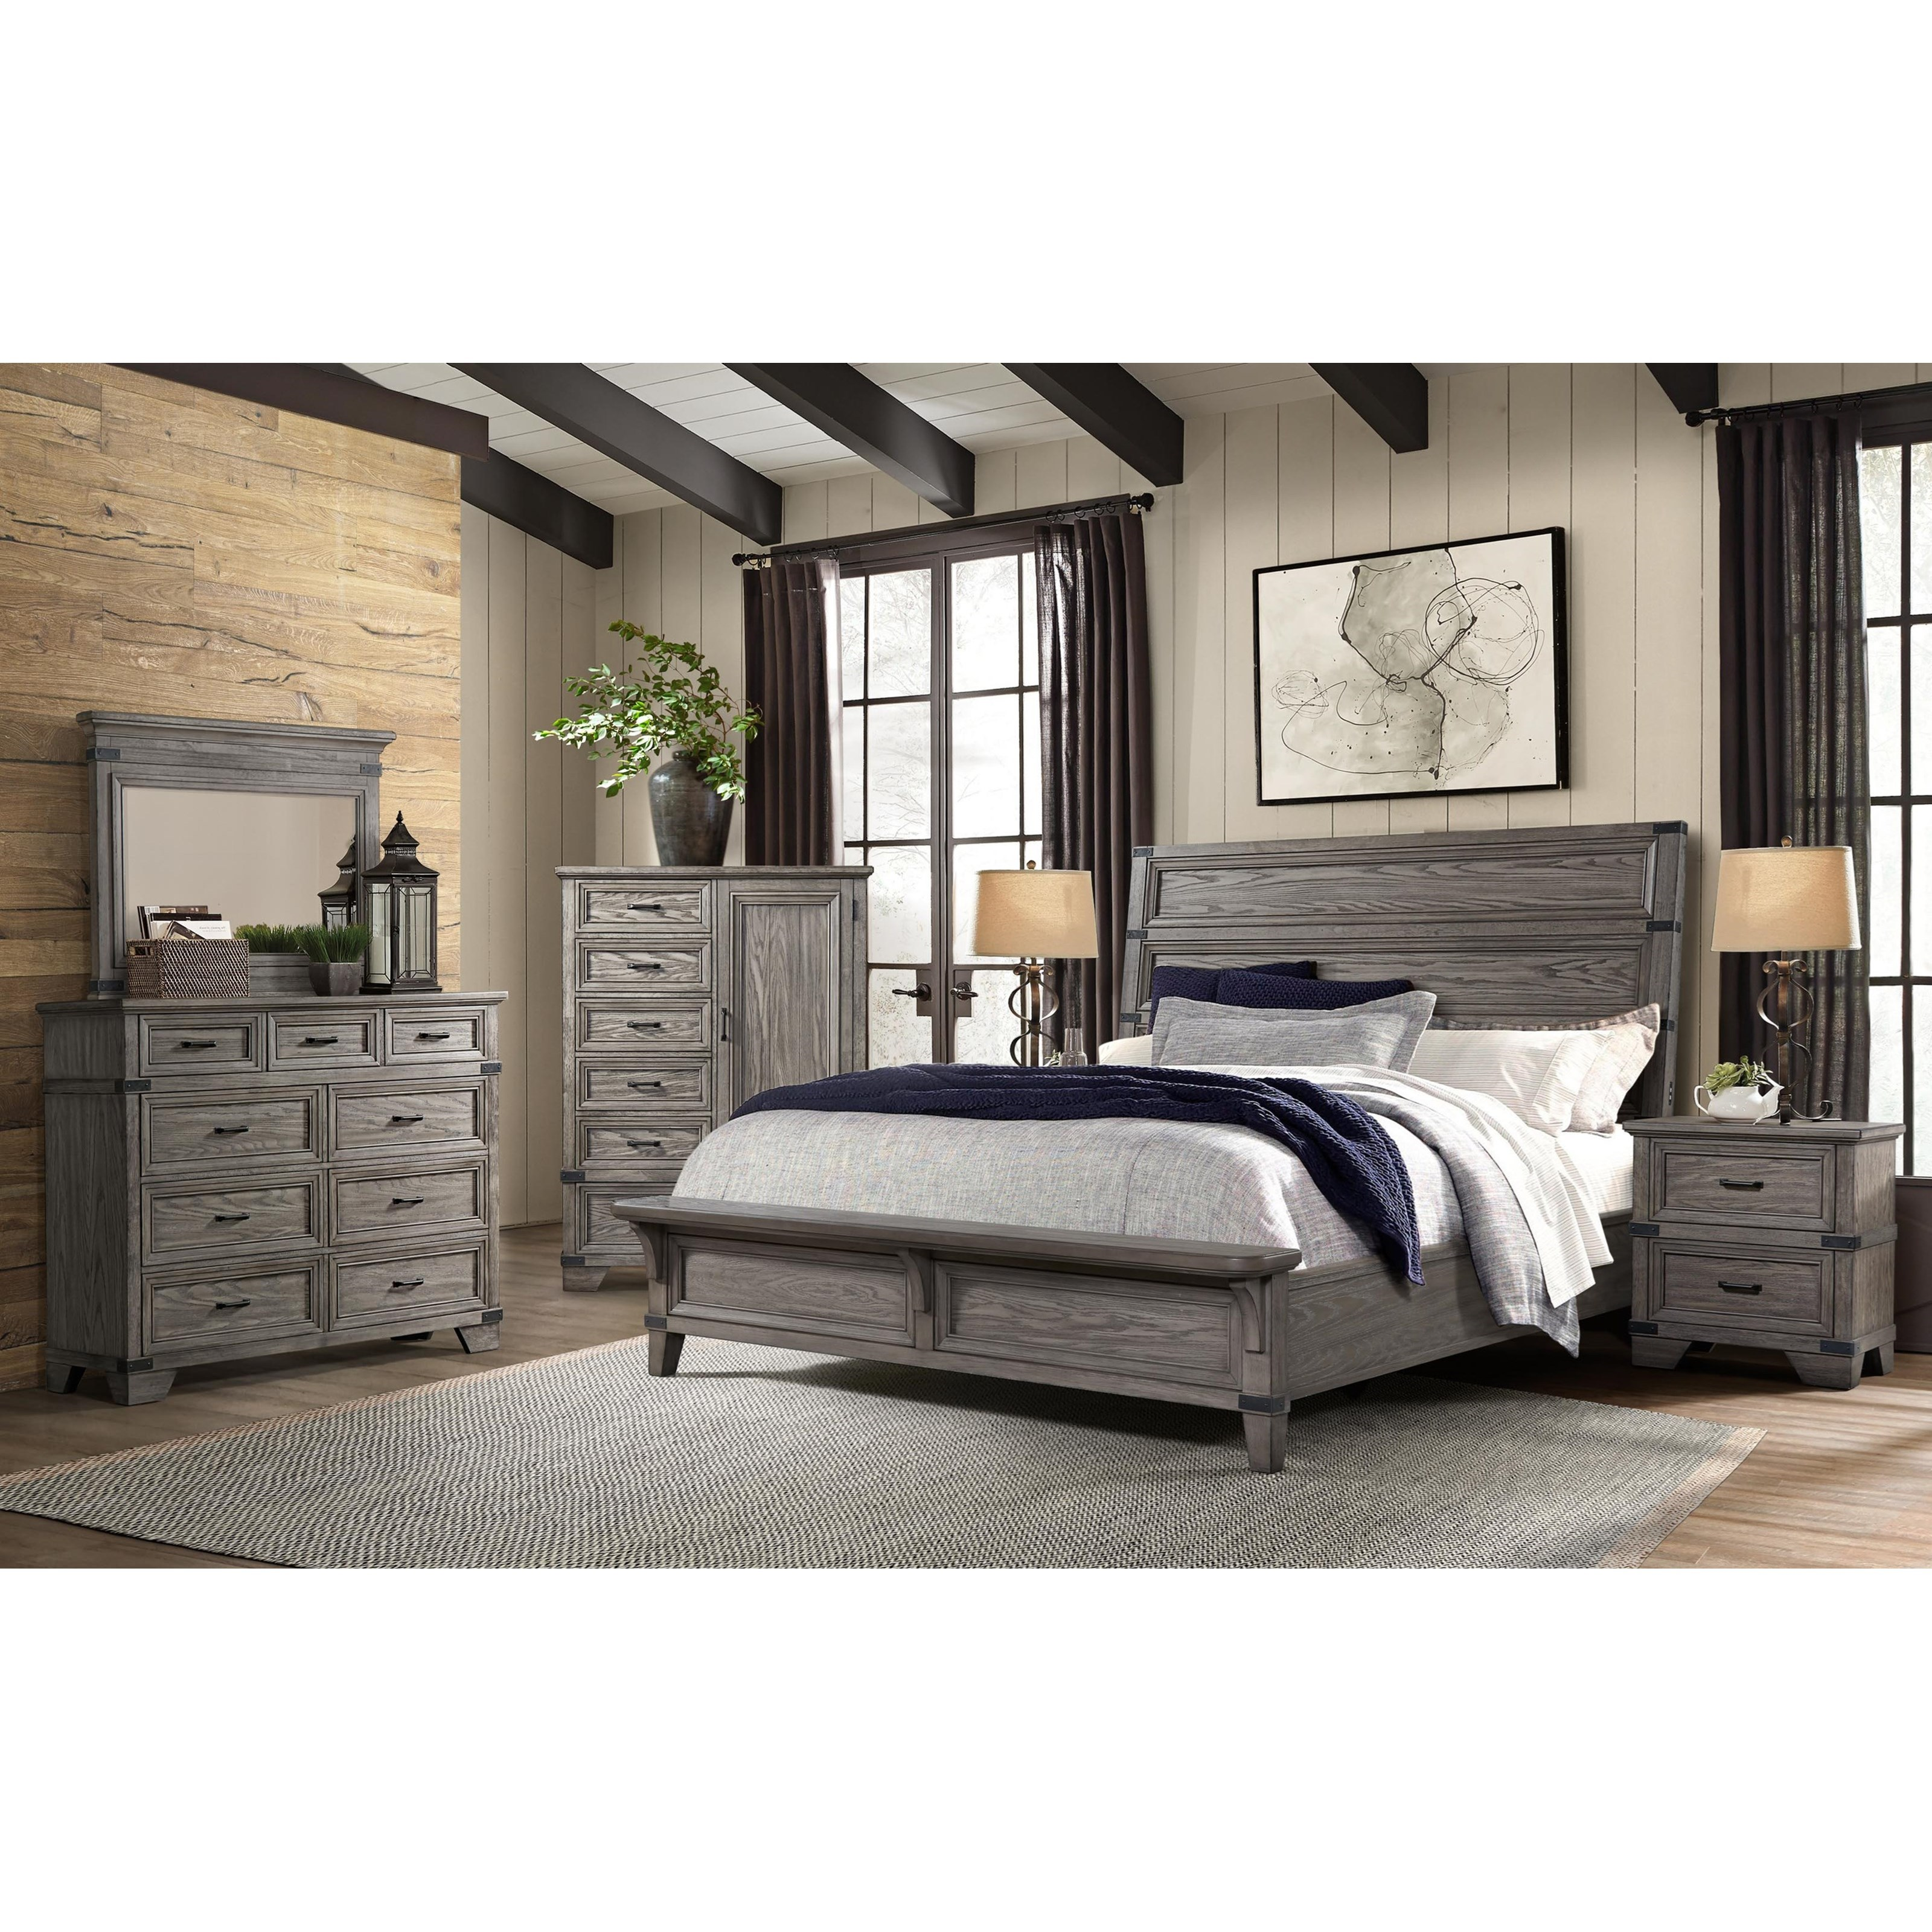 Forge King Bedroom Group by Sussex Bay at Johnny Janosik